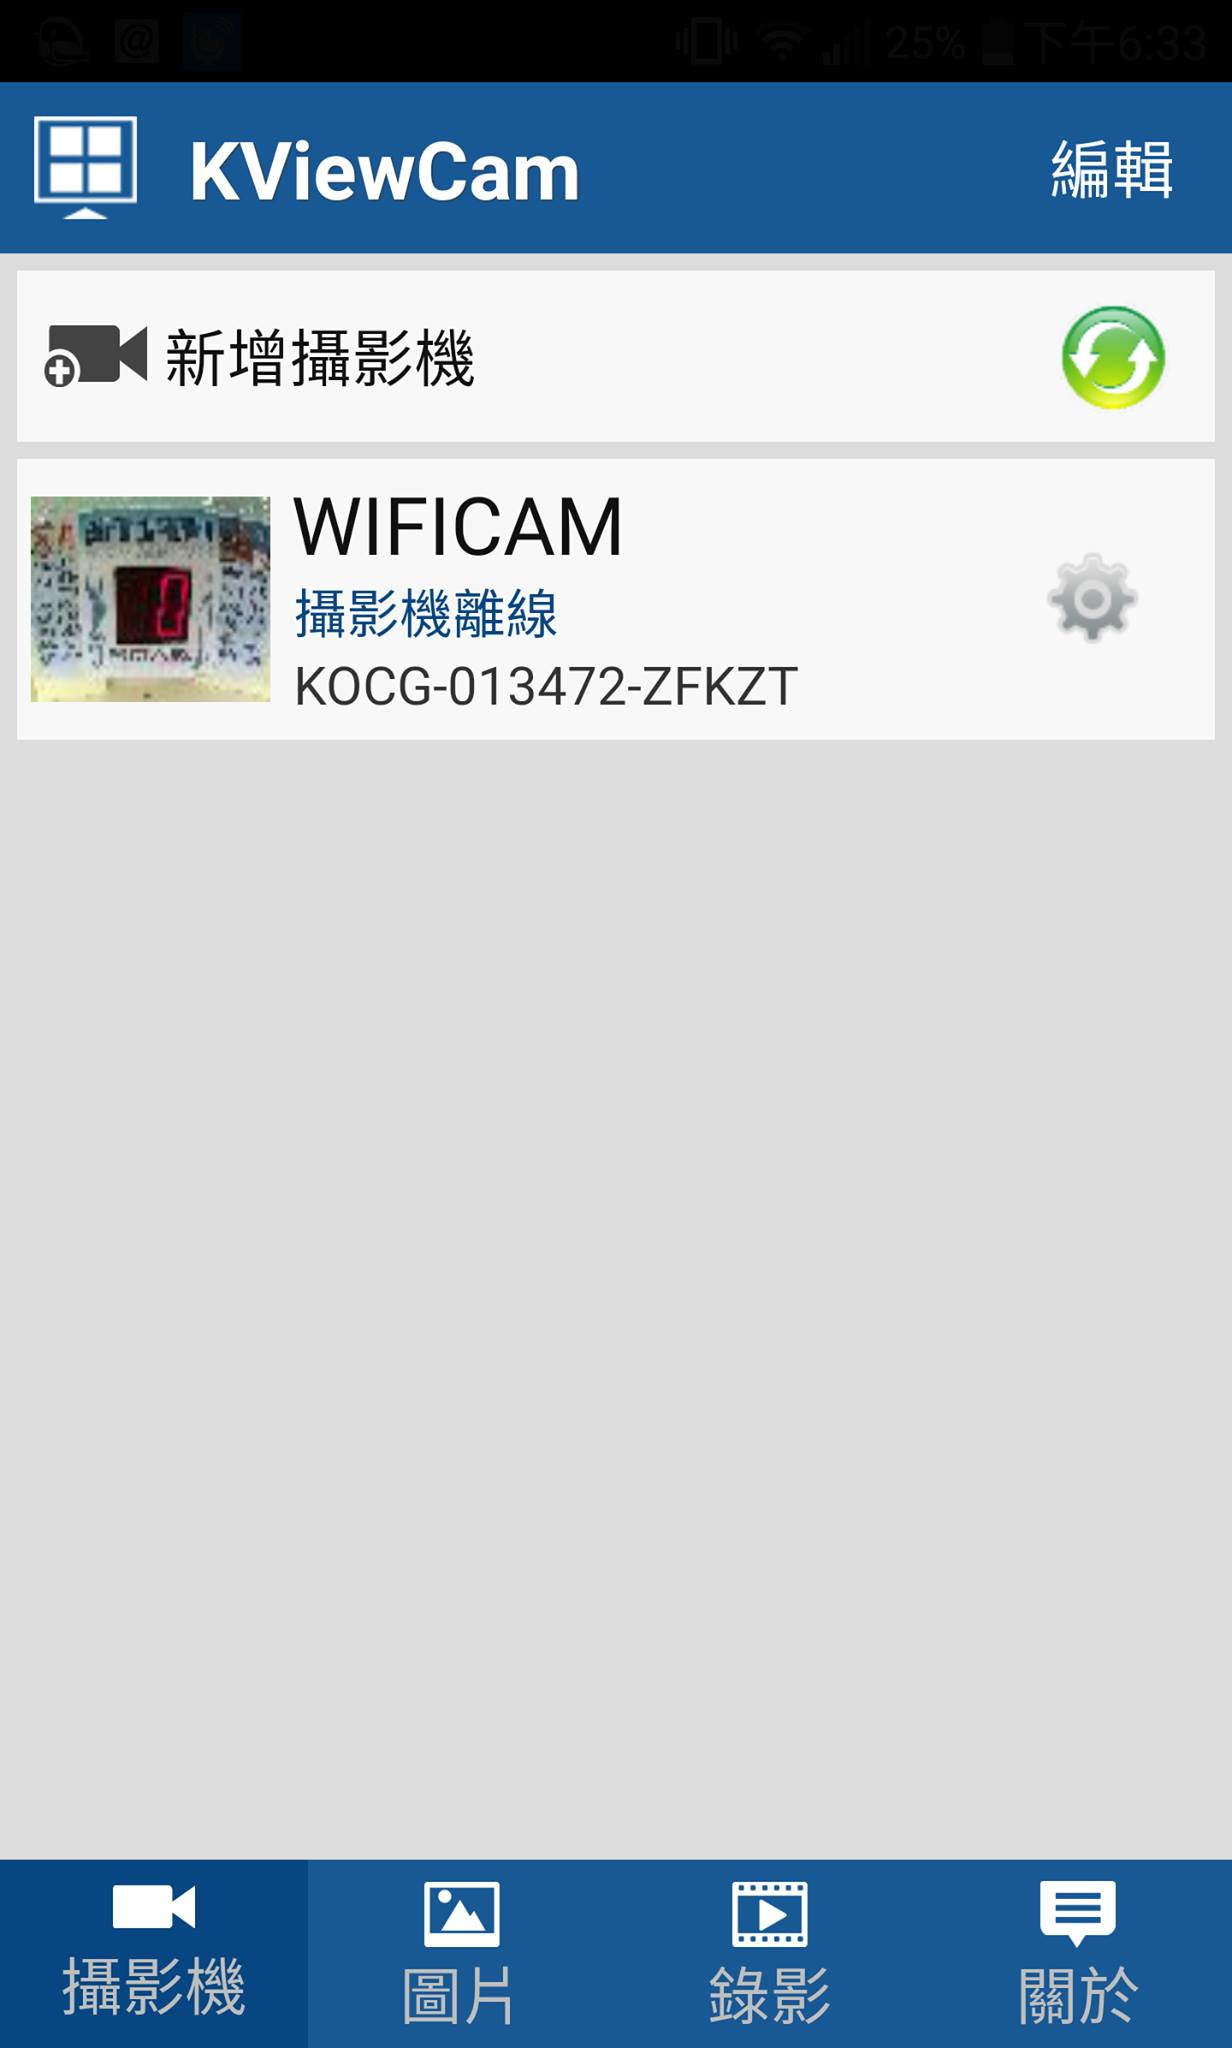 WIFICAM